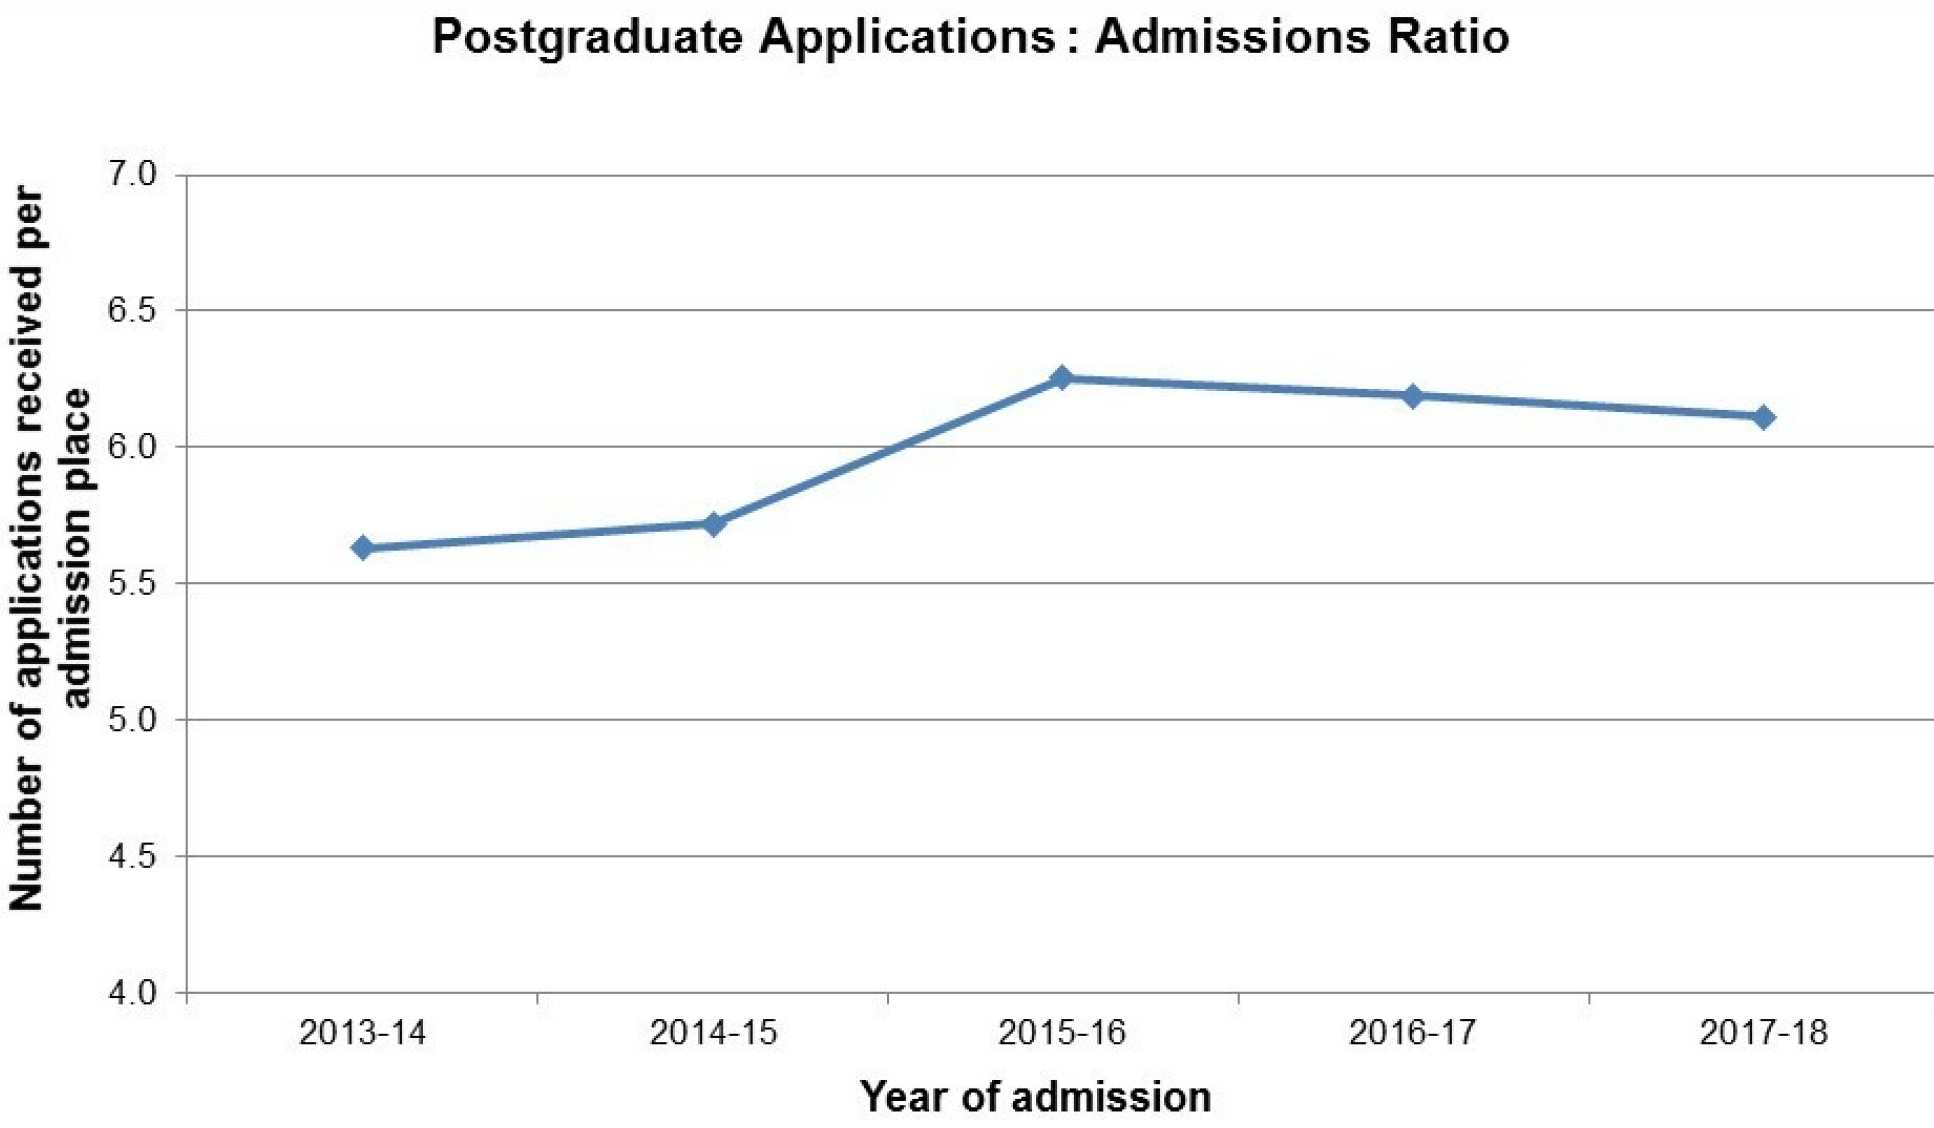 Postgraduate Applications : Admissions Ratio